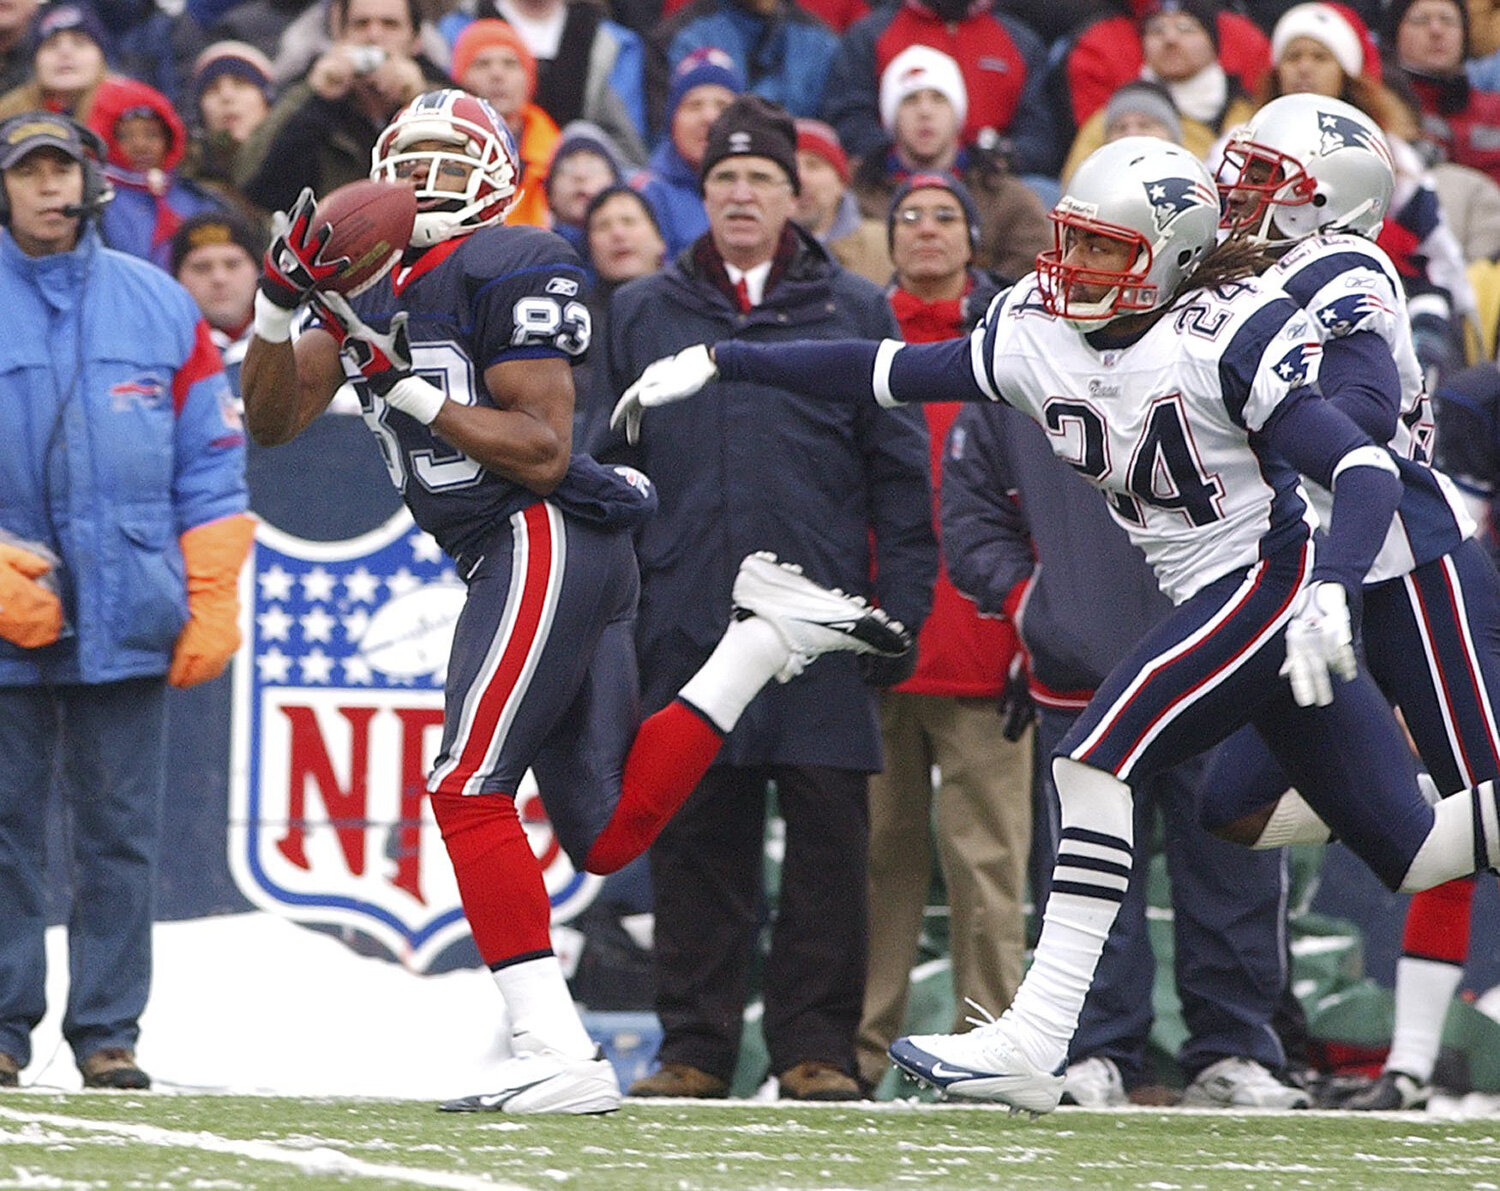 Buffalo Bills Lee Evans comes up with a Losman pass with 10:28 left in the first quarter. The play was called back due to an offensive penalty. The Bills went on to loose to the New England Patriots 35 - 7 at Ralph Wilson Stadium in Orchard Park in an AFC match up on Dec. 11, 2005.